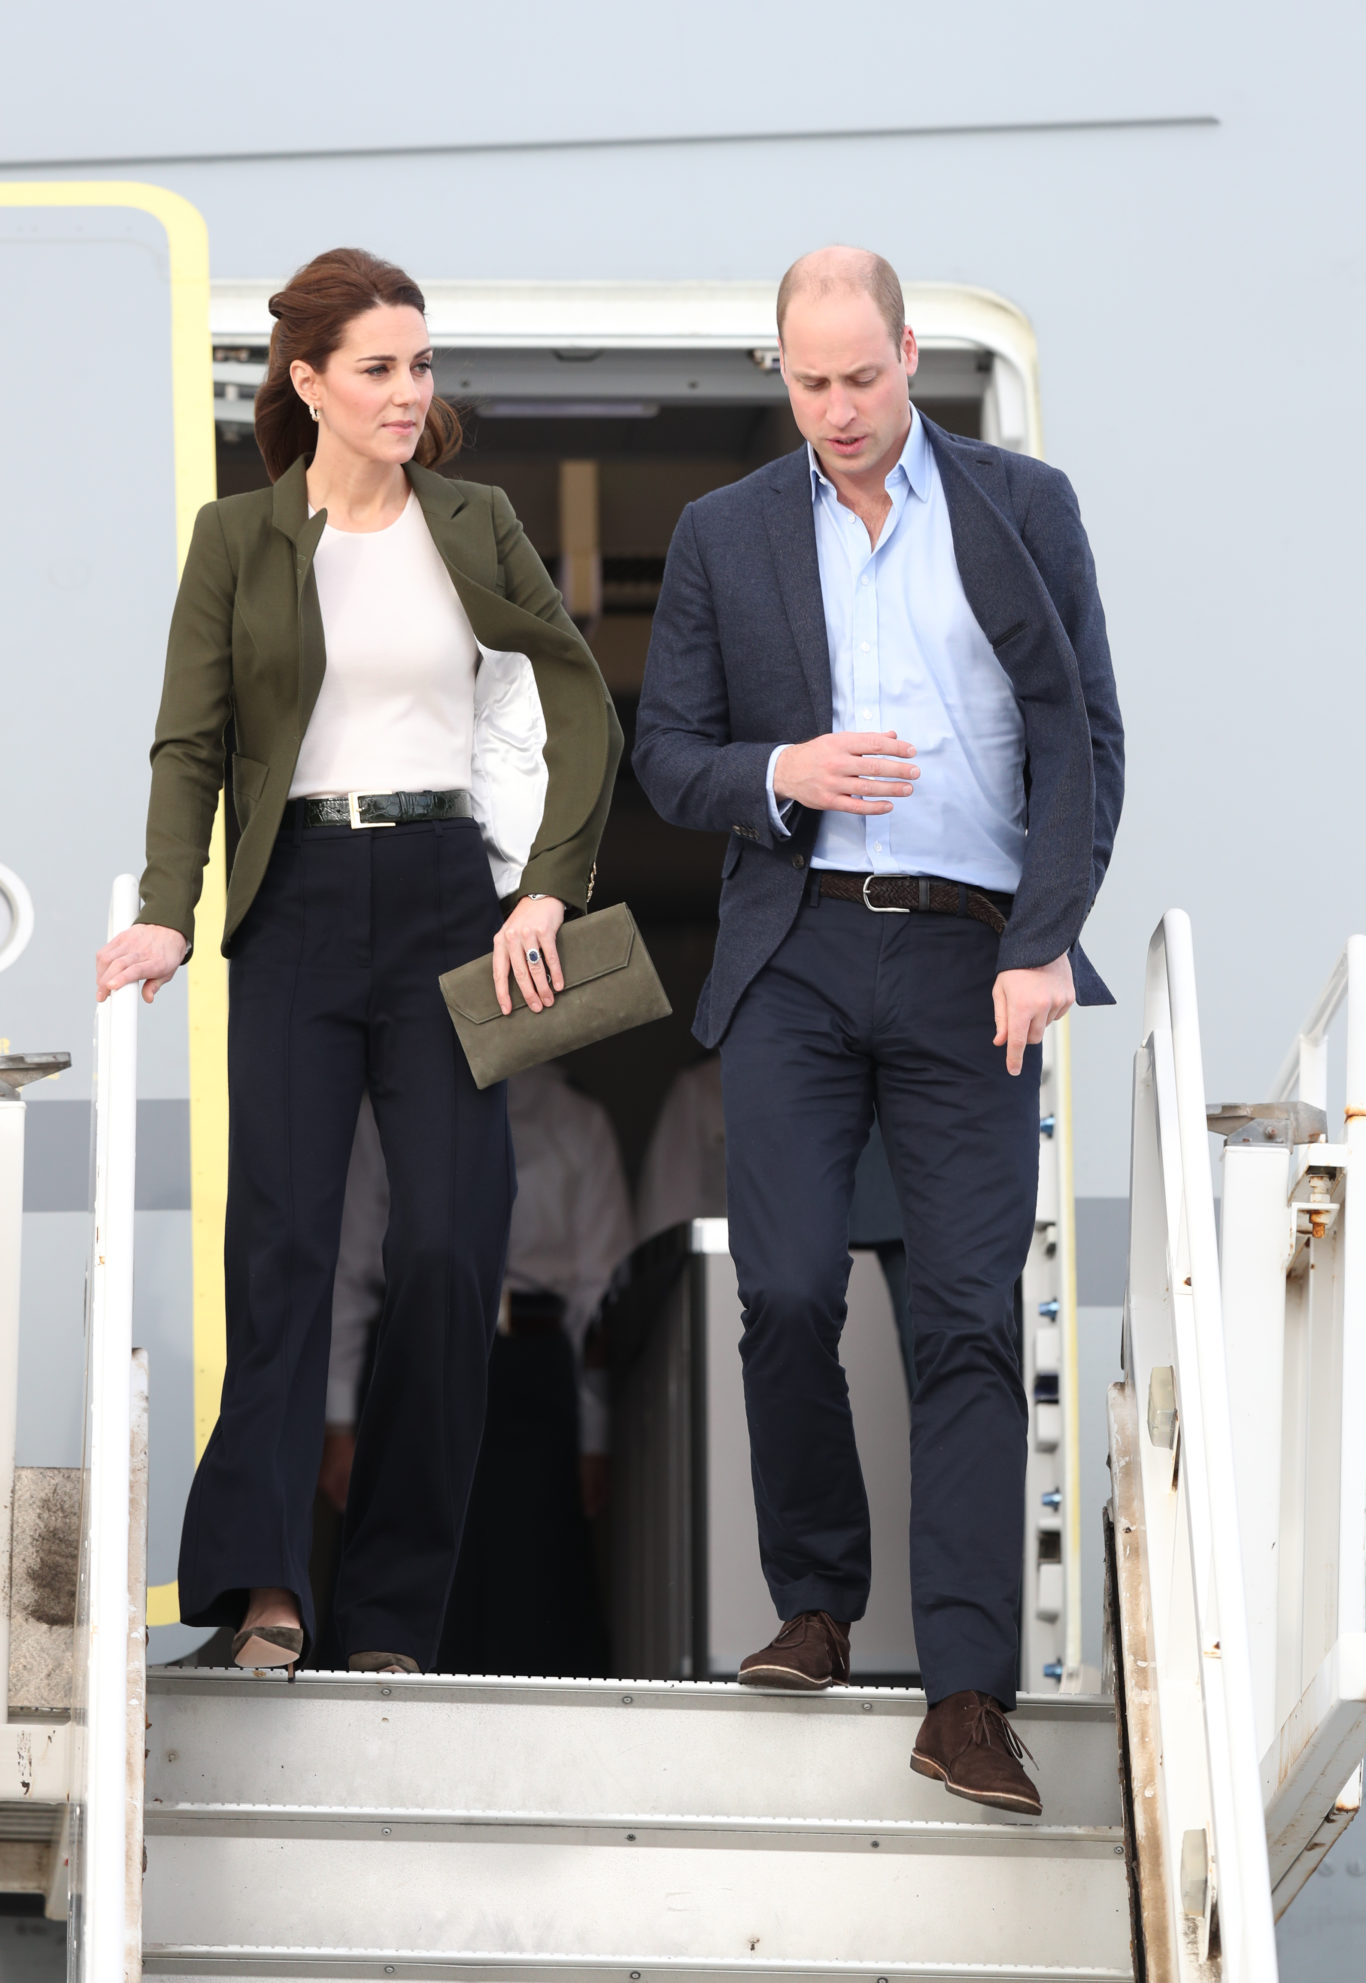 In Pictures William And Kate Delight Troops With Trip To Cyprus Base Guernsey Press